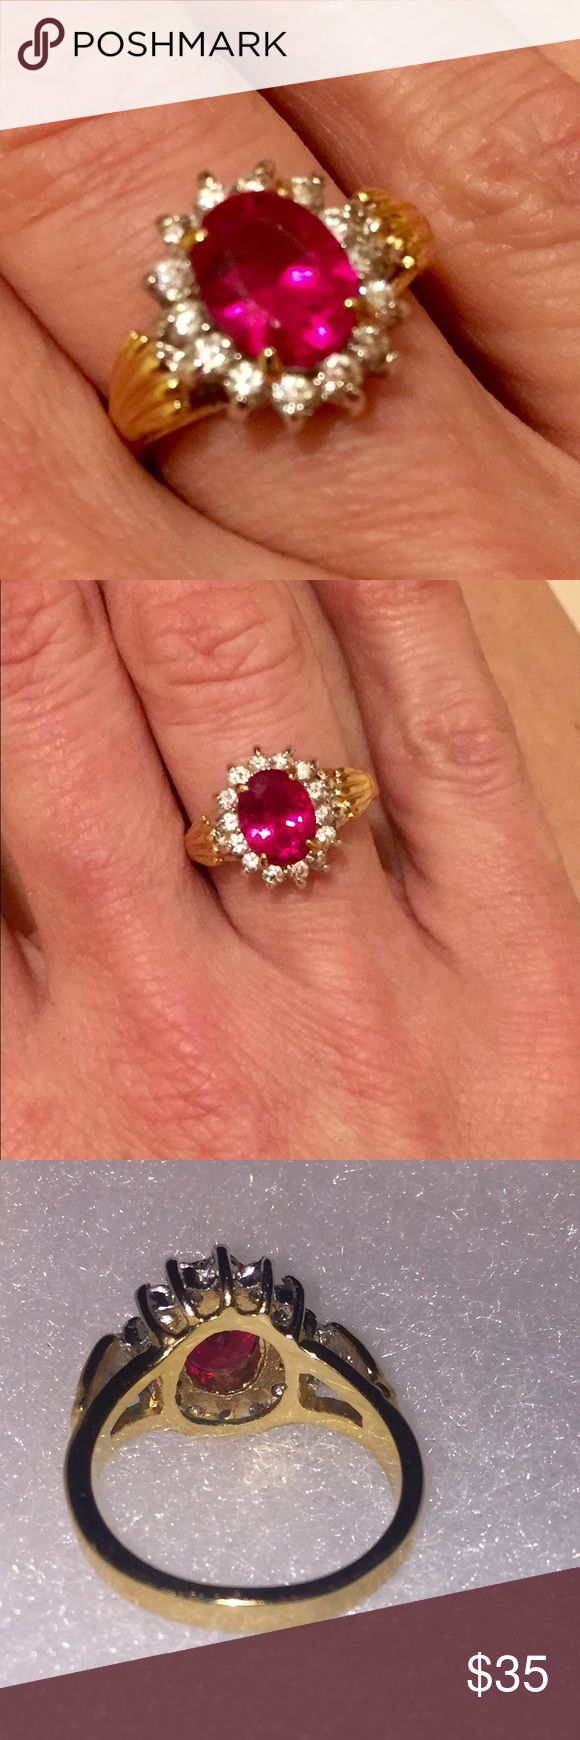 NWOT Gorgeous Cocktail Ring Stunning Modern-Vintage Hallmark Stamped 18K GERSC White and Yellow Gold Electroplated With A Beautiful Synthetic Ruby Set Center Accented With Sparkling Cluster CZ Cubic Zirconia Accents Fancy Bling Cocktail Dinner Ring Ladies Ring Size 6.5 to 7 High Quality Costume Fashion Jewelry! Jewelry Rings